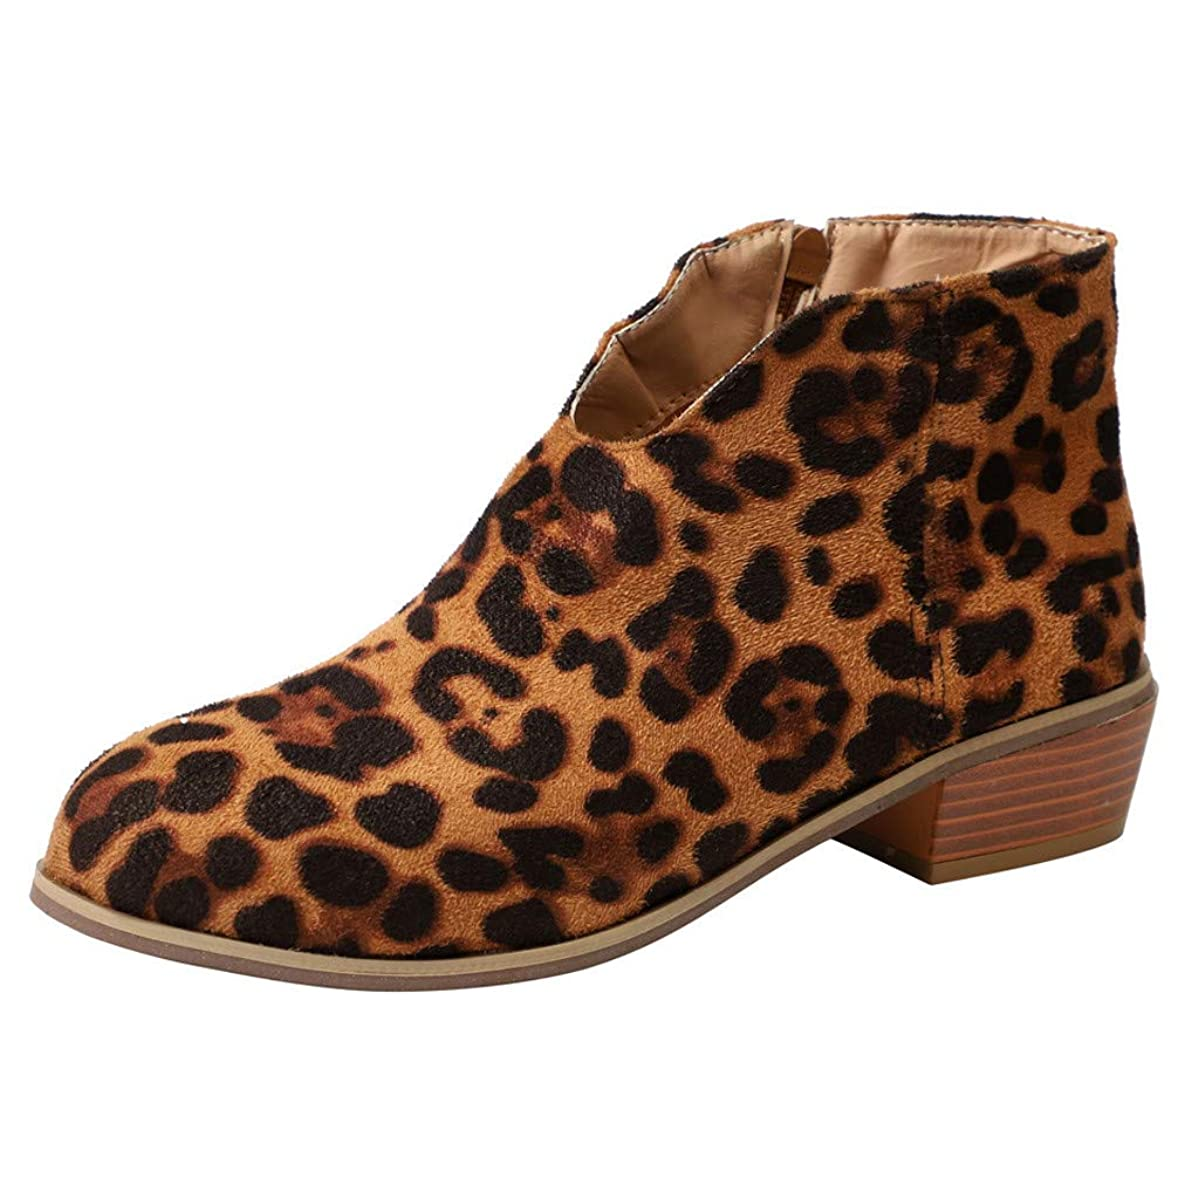 Cenglings Women Leopard Print Round Toe Low Chunky Heel Boots Zipper Boots Slip On Ankle Booties Party Office Shoes